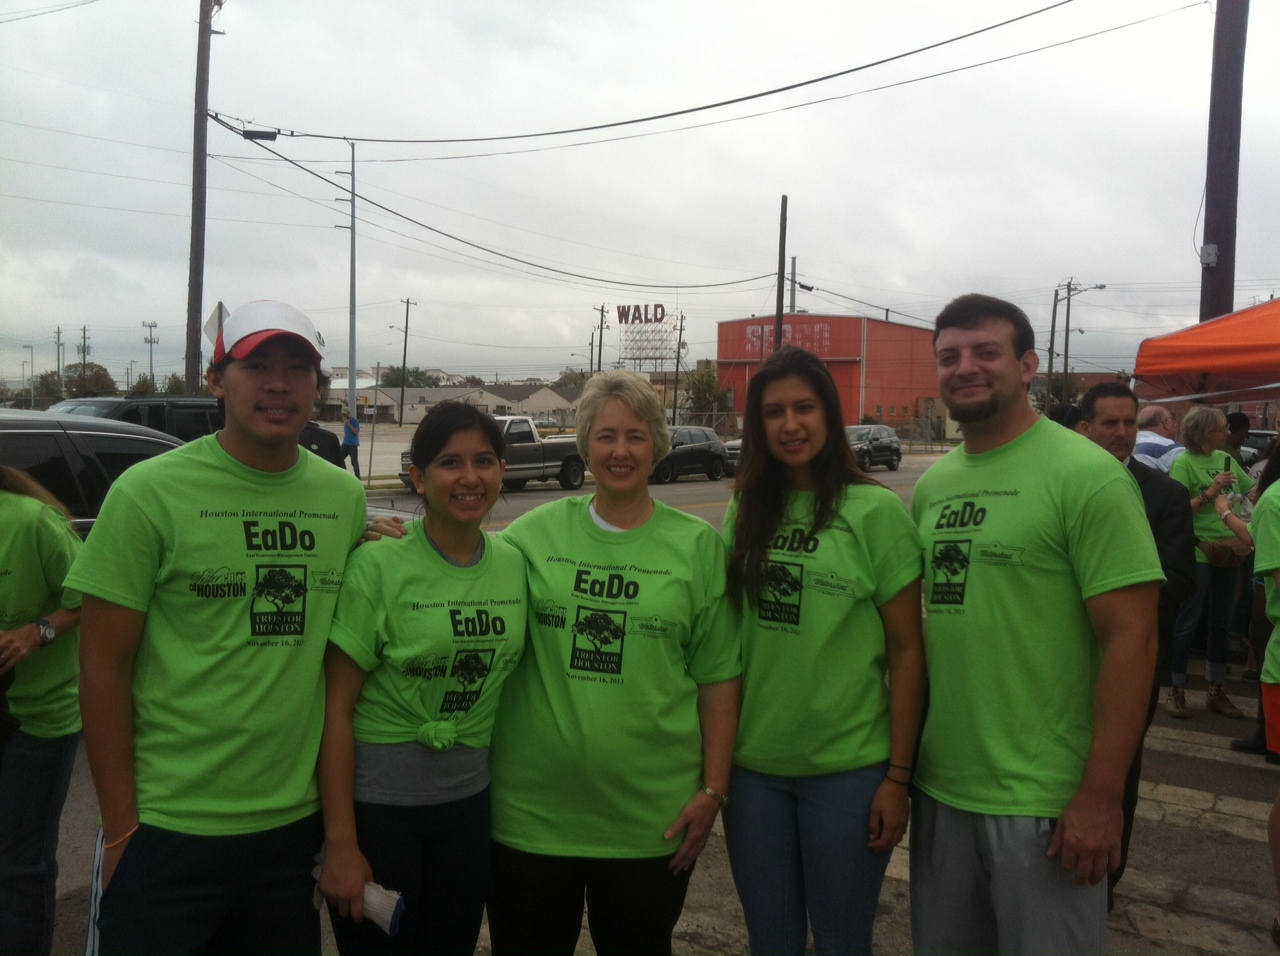 Kelvin Dangtran, Alejandra Lucio, Houston Mayor Annise Parker, Michellee Gutierrez, Samuel Swift